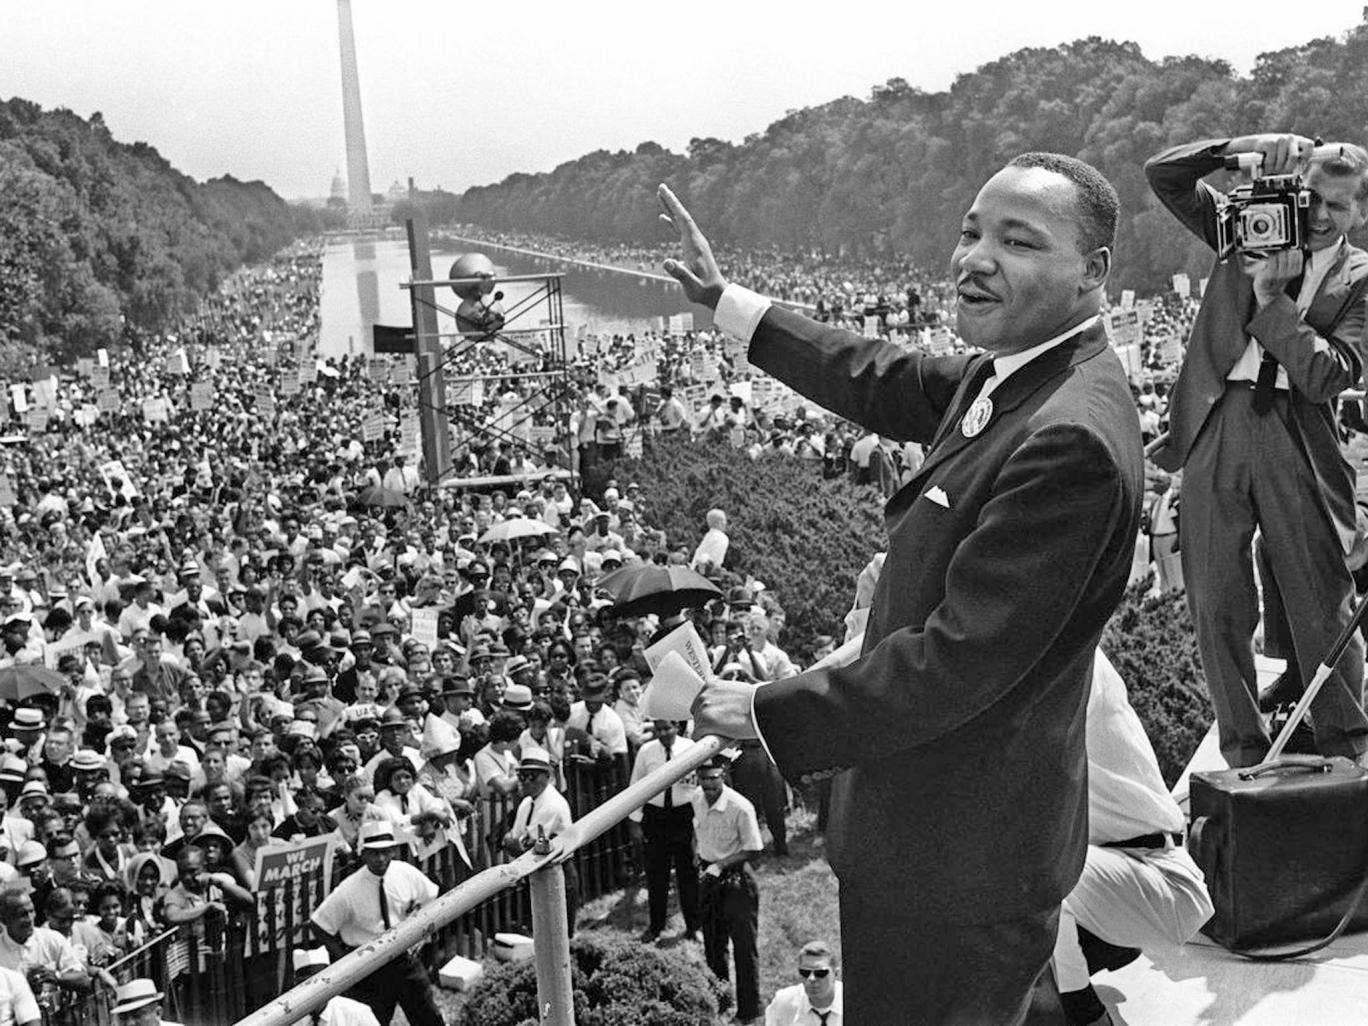 Dr King on the Mall in Washington in August 1963, at the time of his 'I Have a Dream' speech campaigning for racial equality